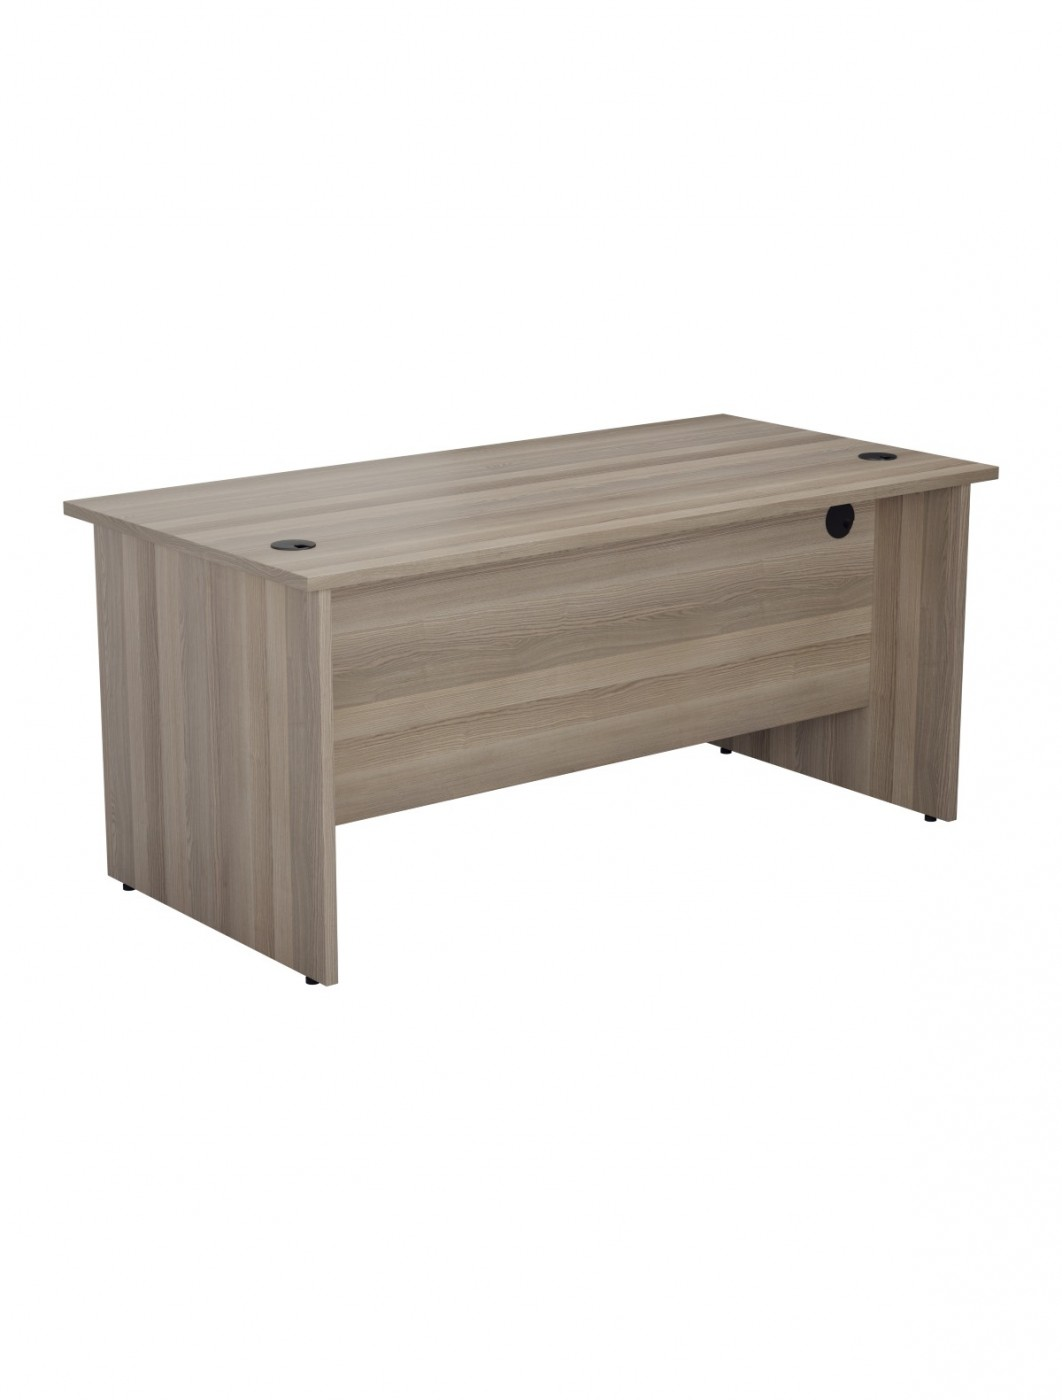 Grey Oak Office Desk 1600x800mm TC One Panel Desk OPR1680PGO   Enlarged View